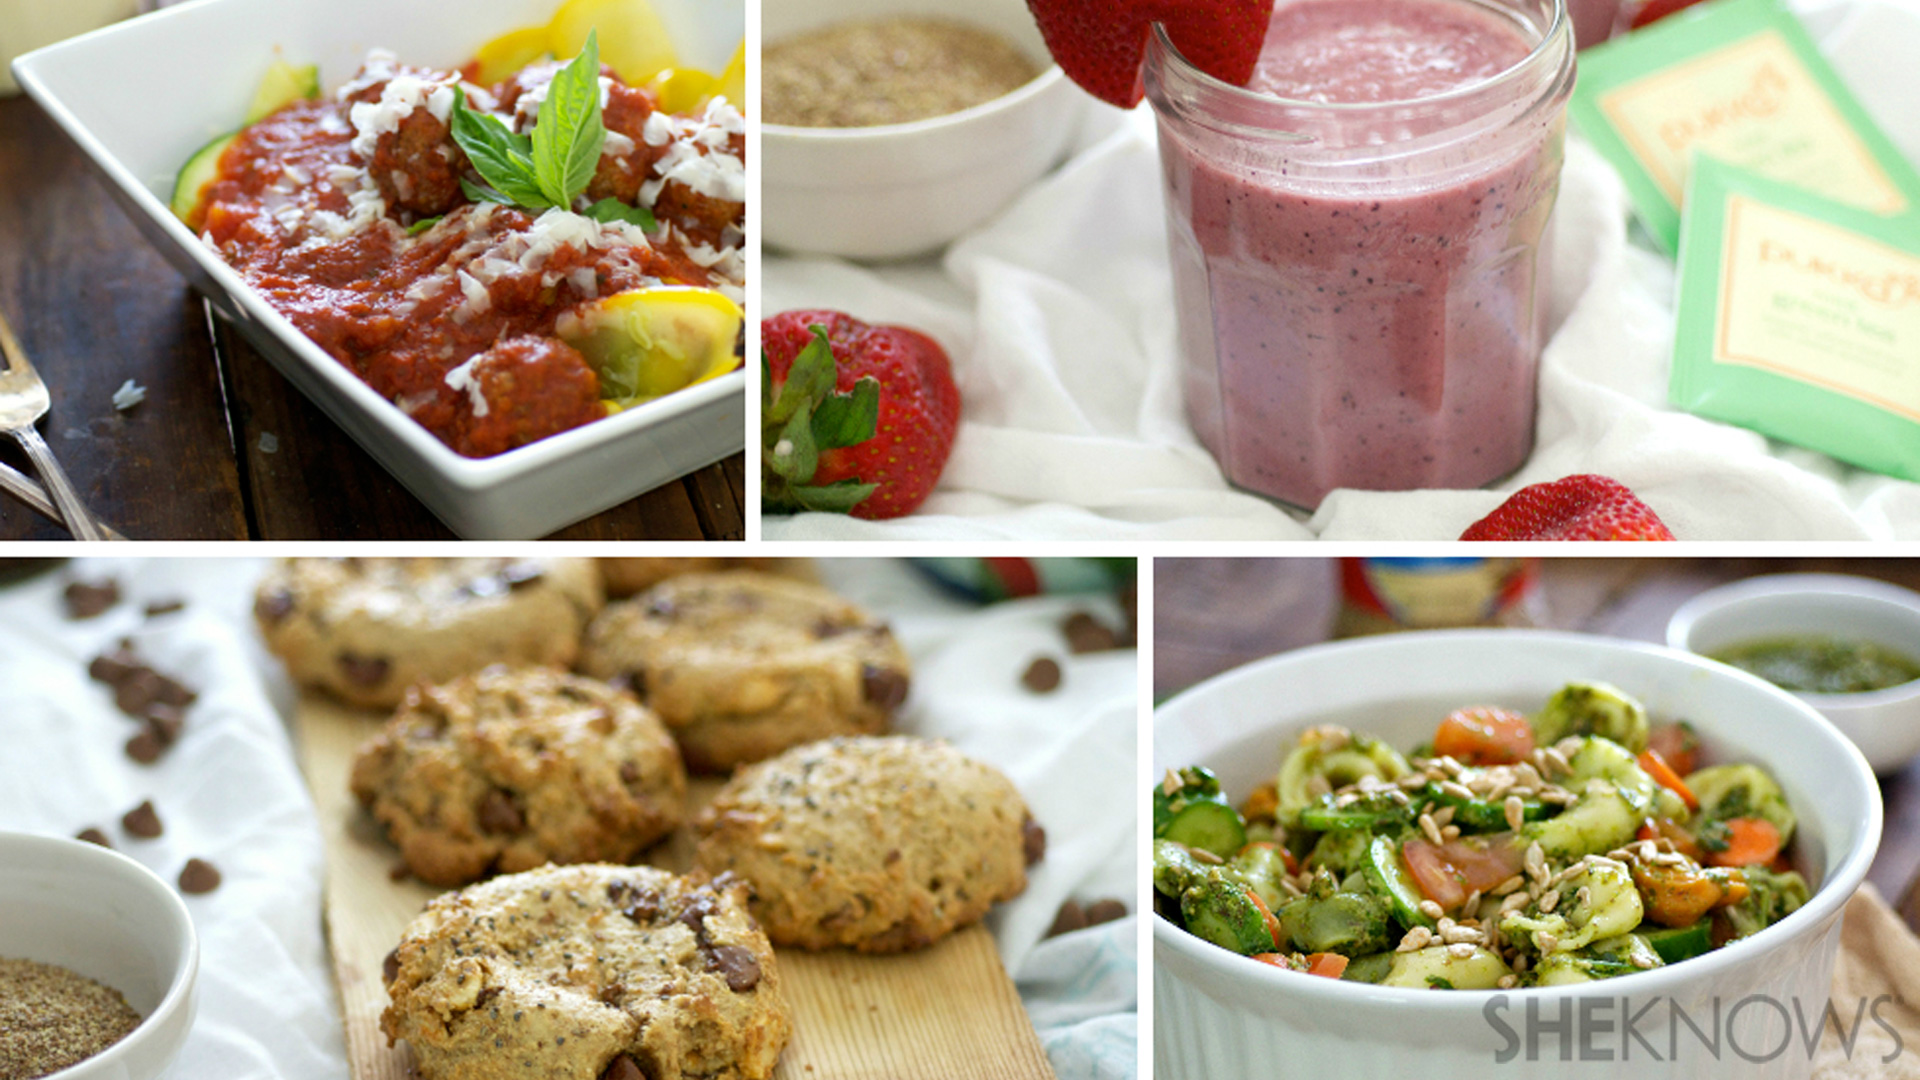 Skinny recipes for bikini season